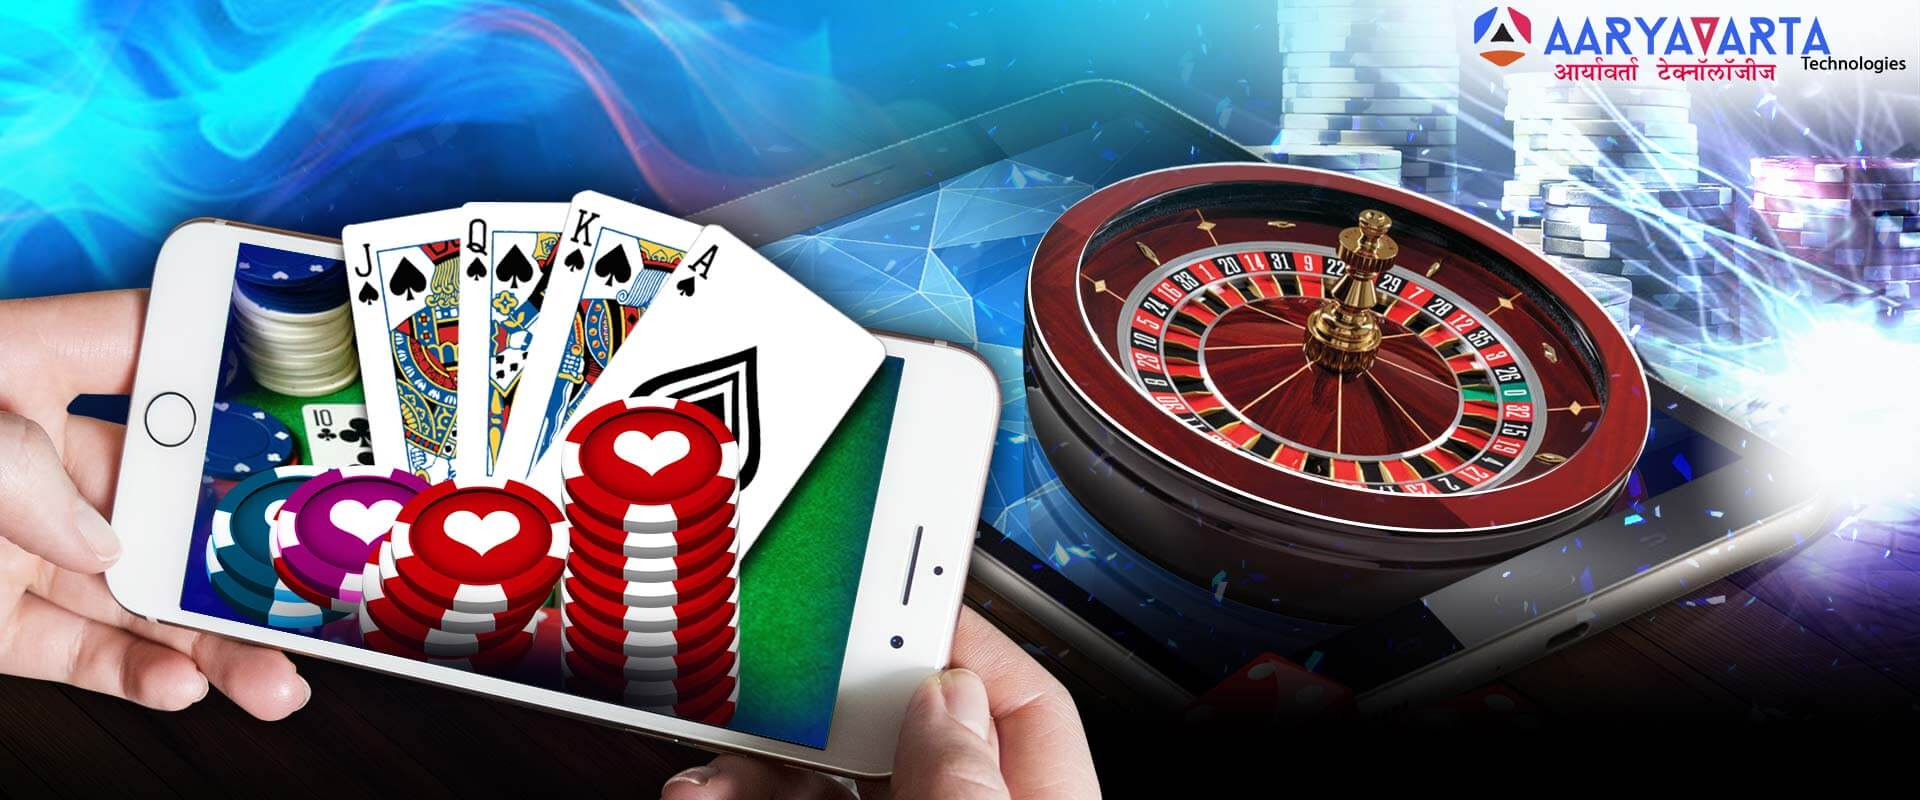 casino-multiplayer-gaming-company-Aaryavarta Technologies